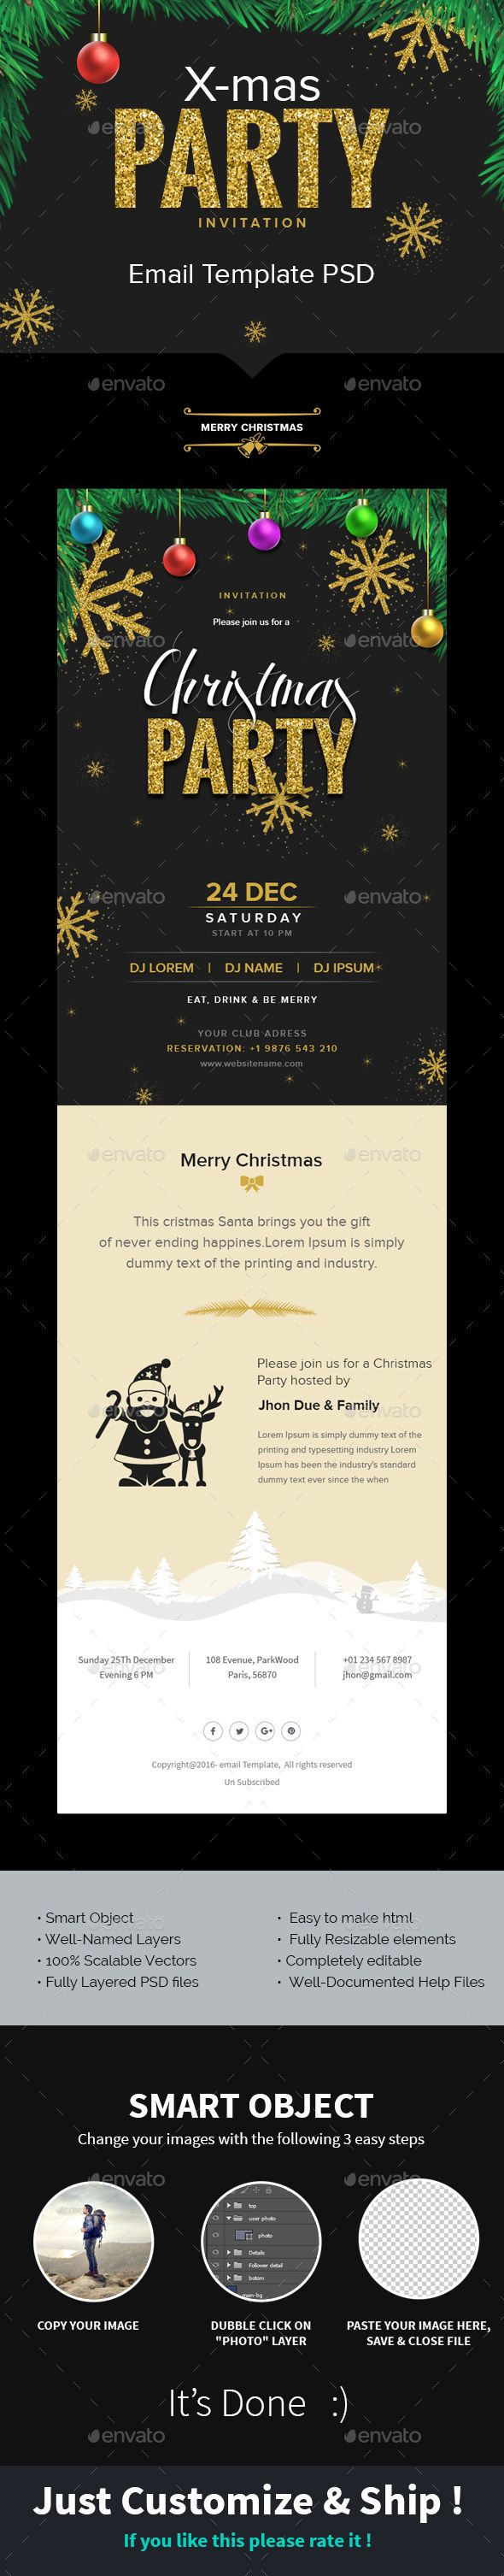 business meeting invitation email template%0A Xmas  Christmas Party Invitation Email Template PSD